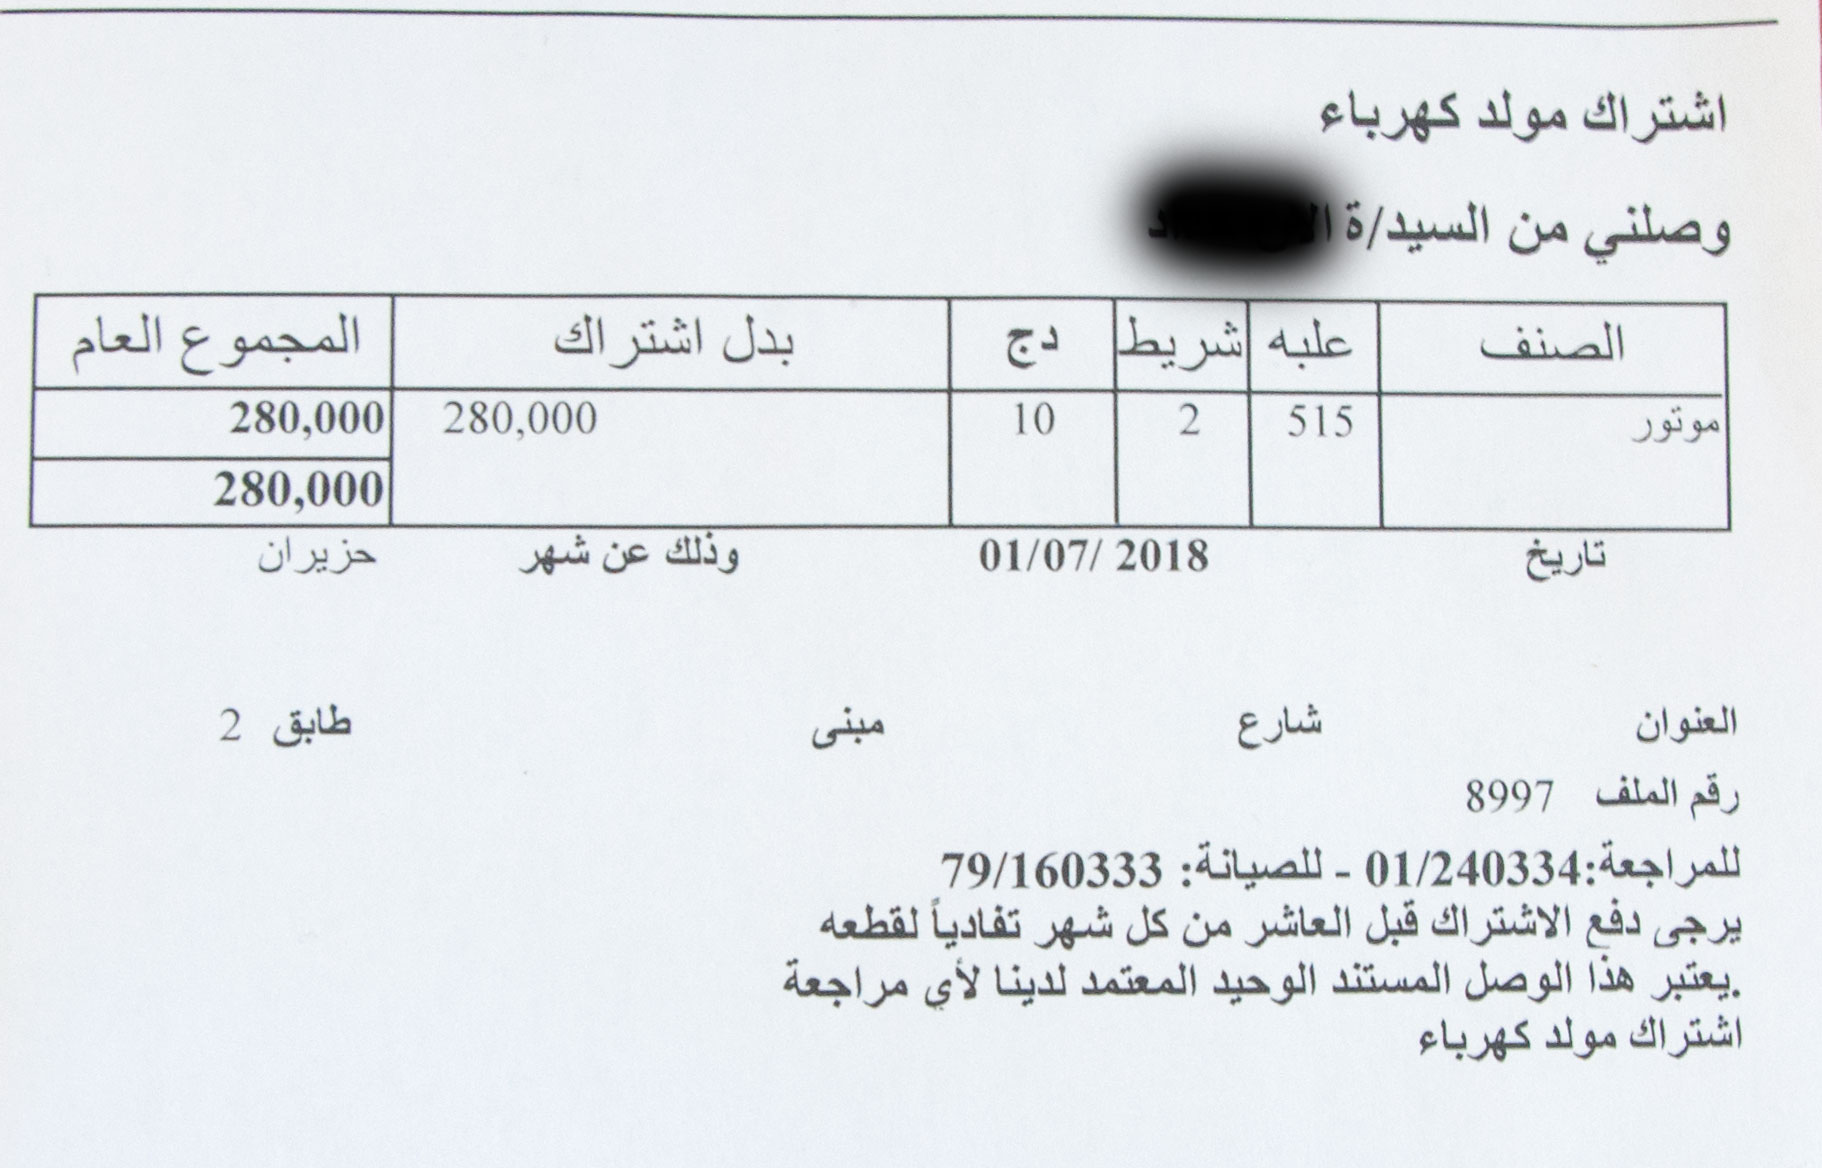 almost 200 generator bill for june in lebanon lebanon in a picture